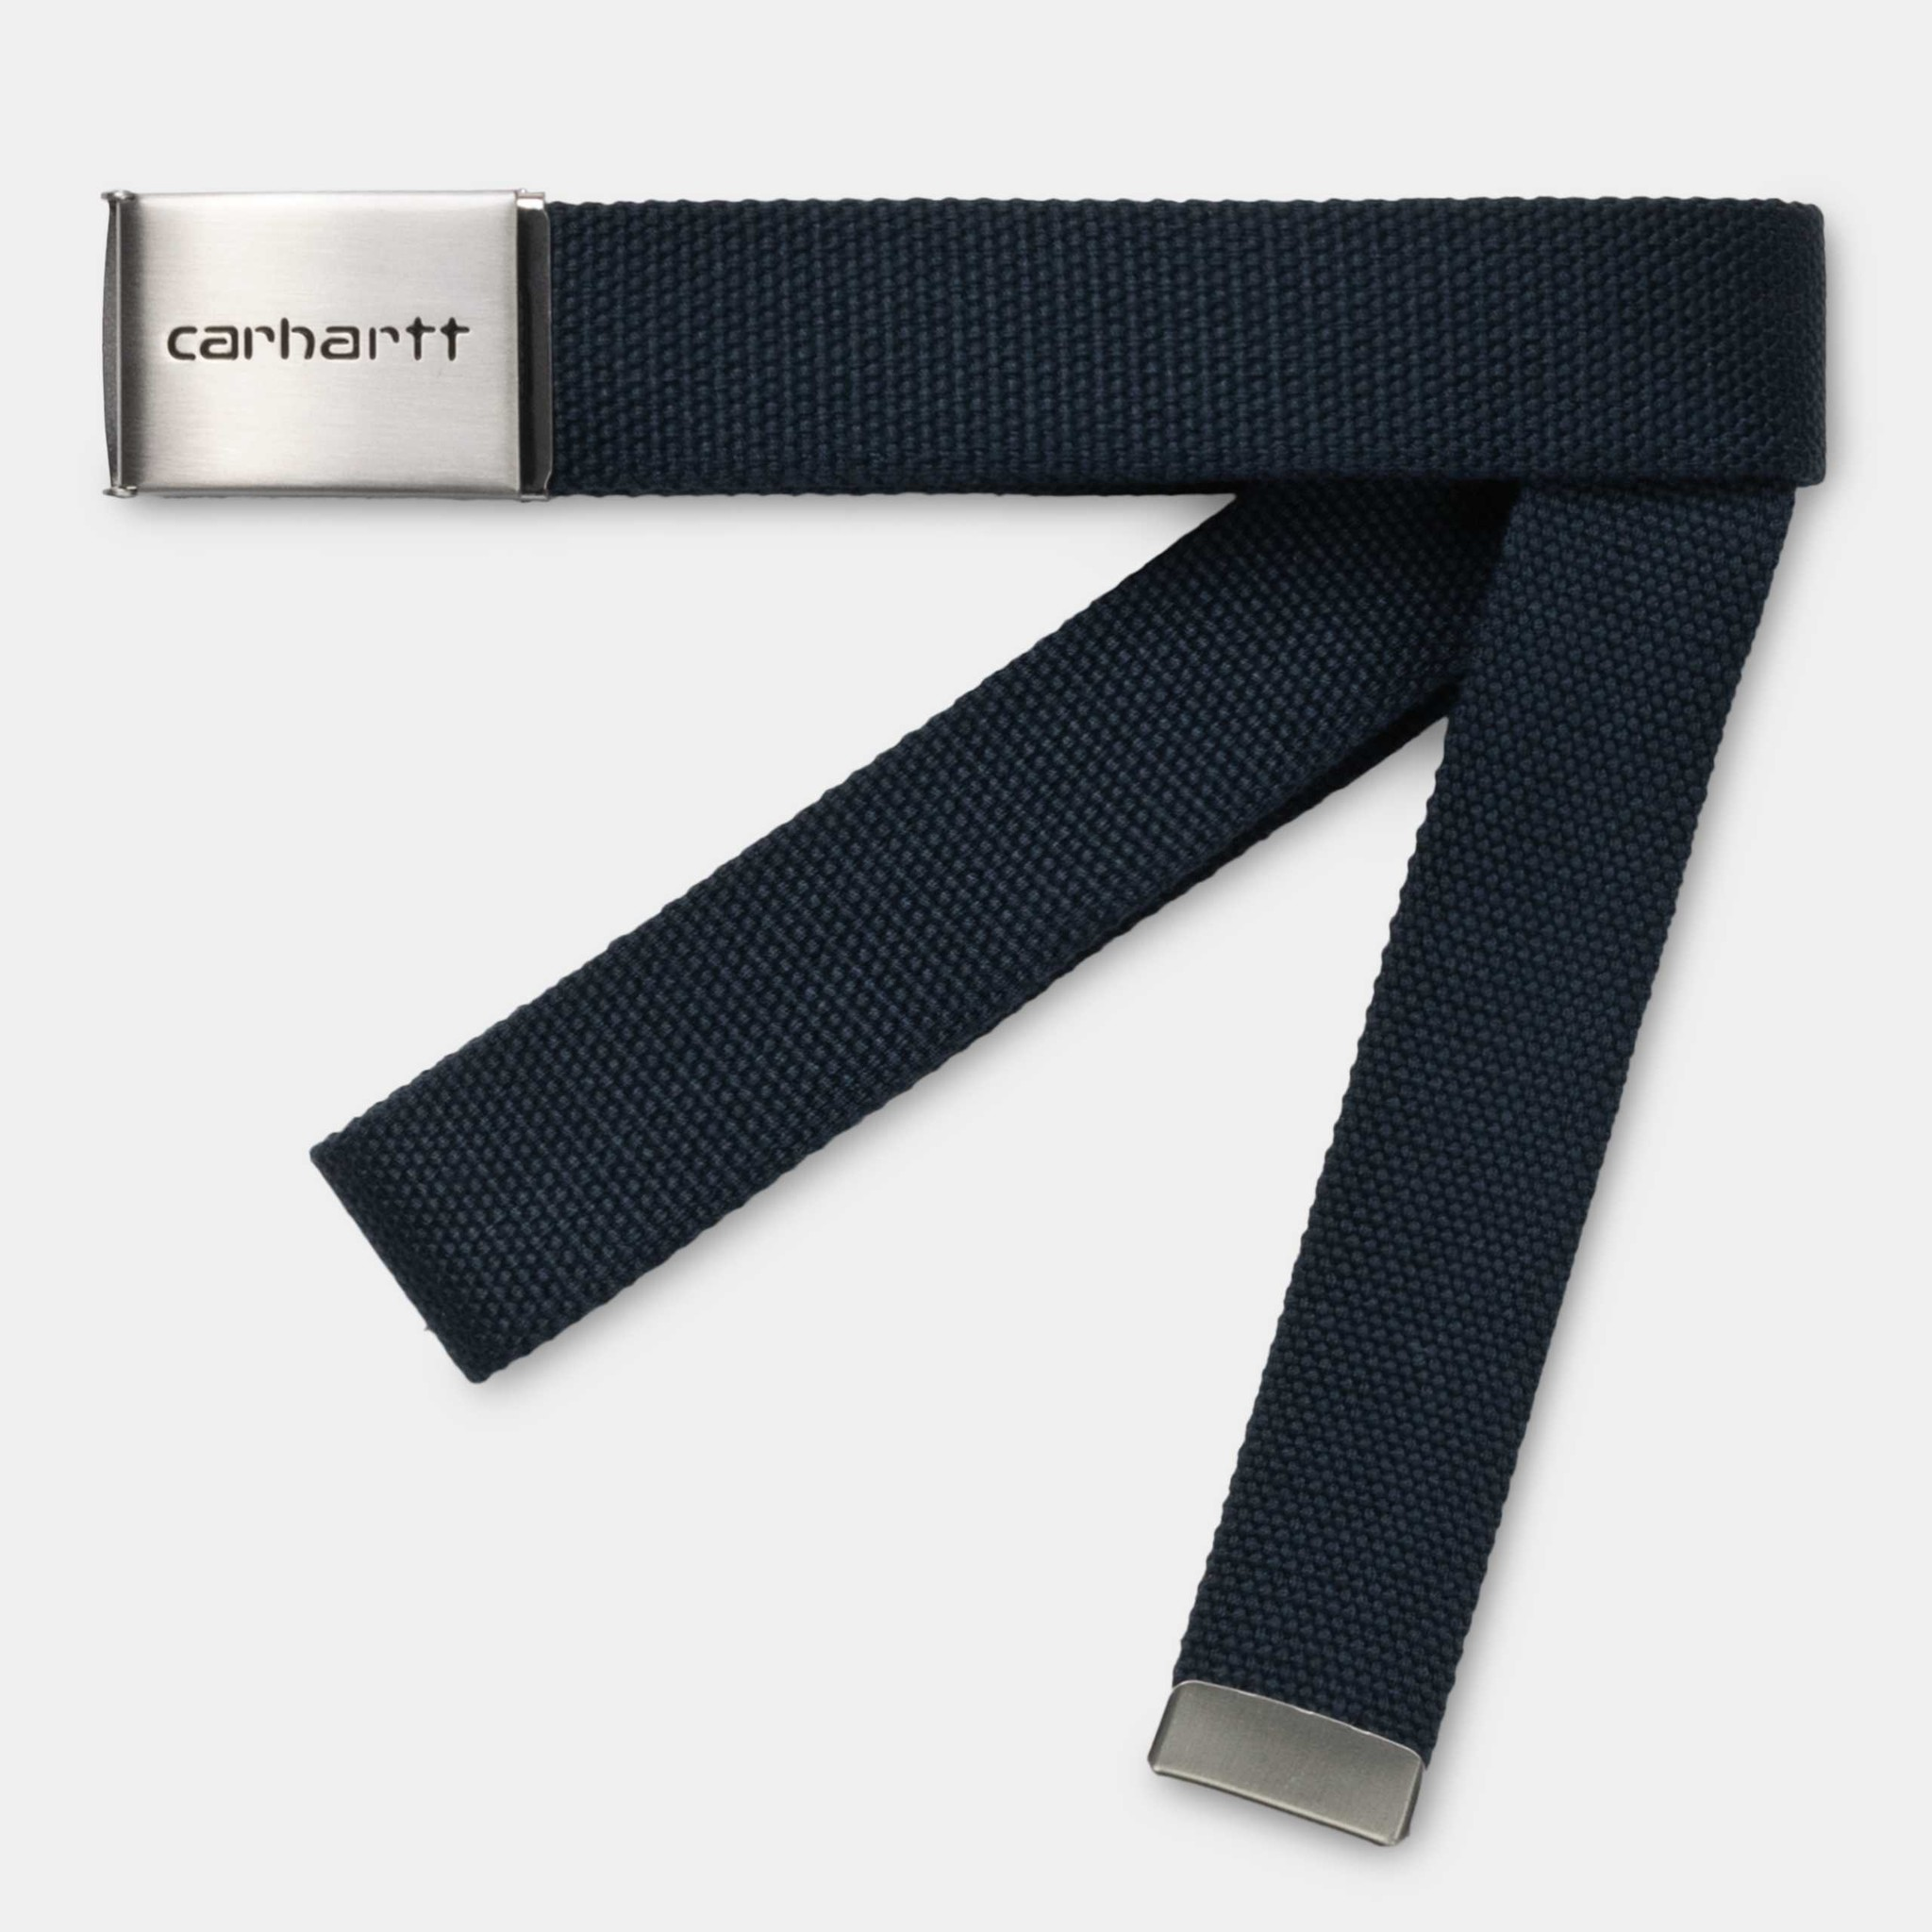 Carhartt Carhartt Clip Belt Chrome